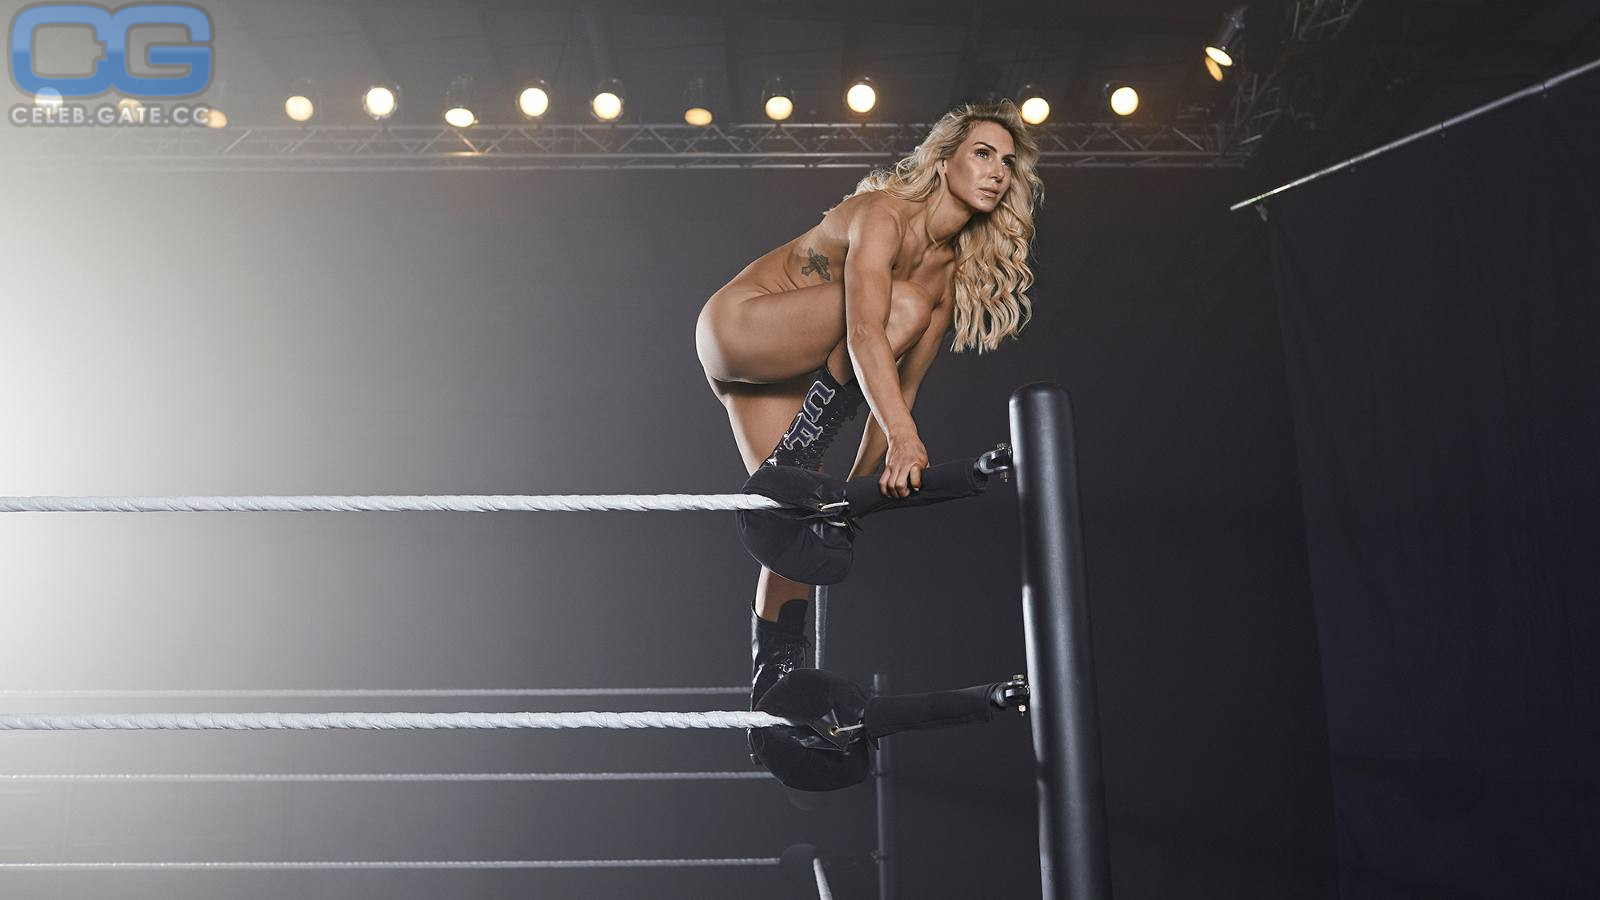 Charlotte flair naked pictures